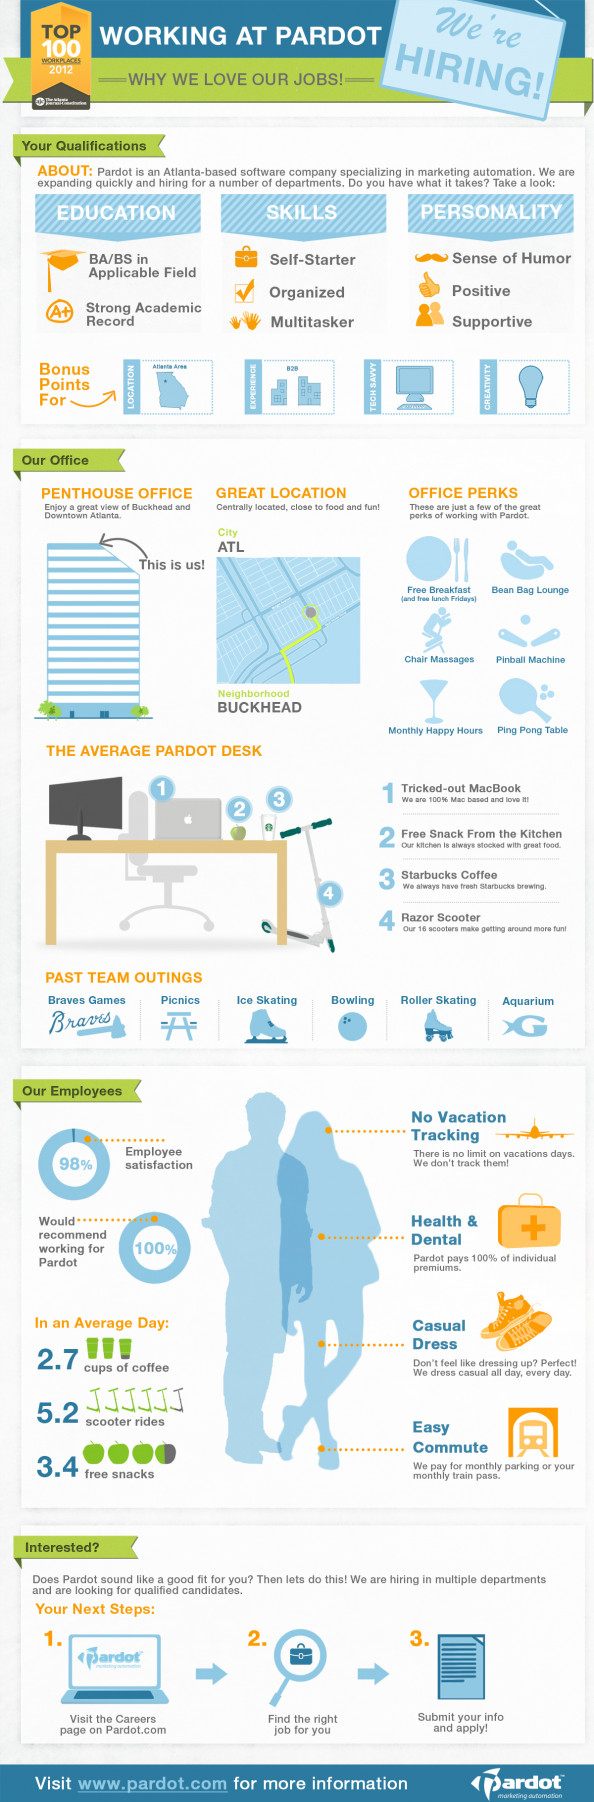 Pardot Recruitment Infographic Infographic